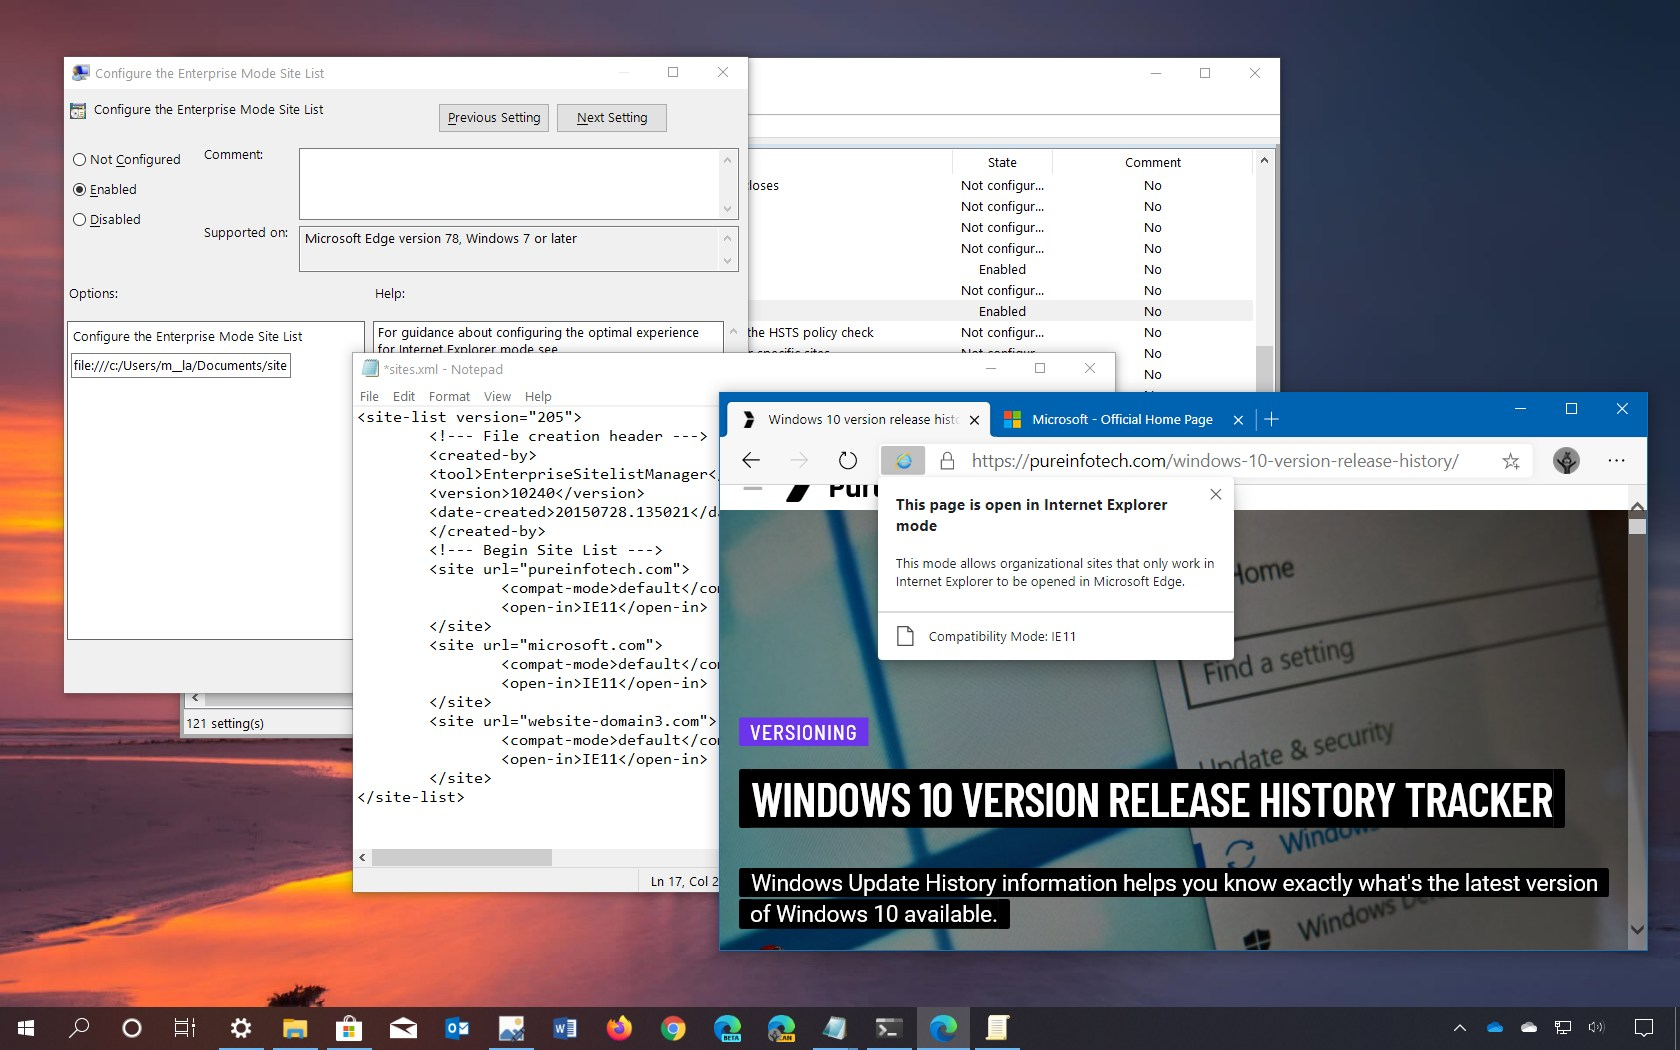 Microsoft Edge IE Mode for external sites